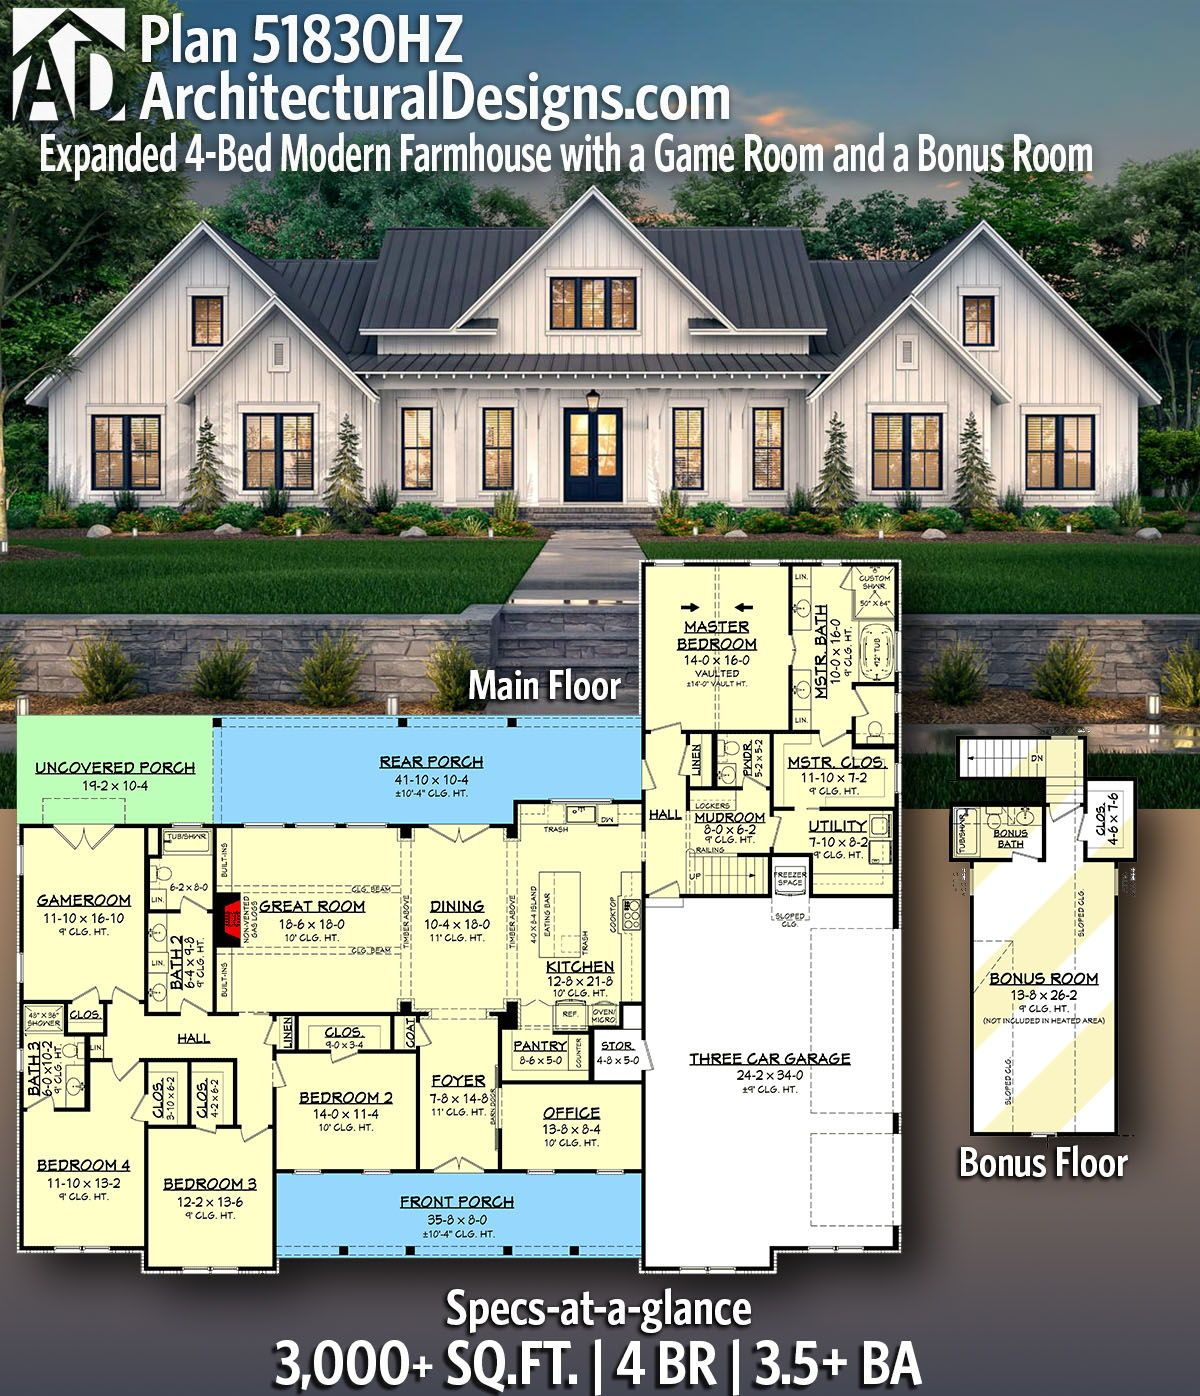 Plan 51830hz Expanded 4 Bed Modern Farmhouse With A Game Room And A Bonus Room In 2020 Craftsman House Plans Modern Farmhouse Plans Family House Plans